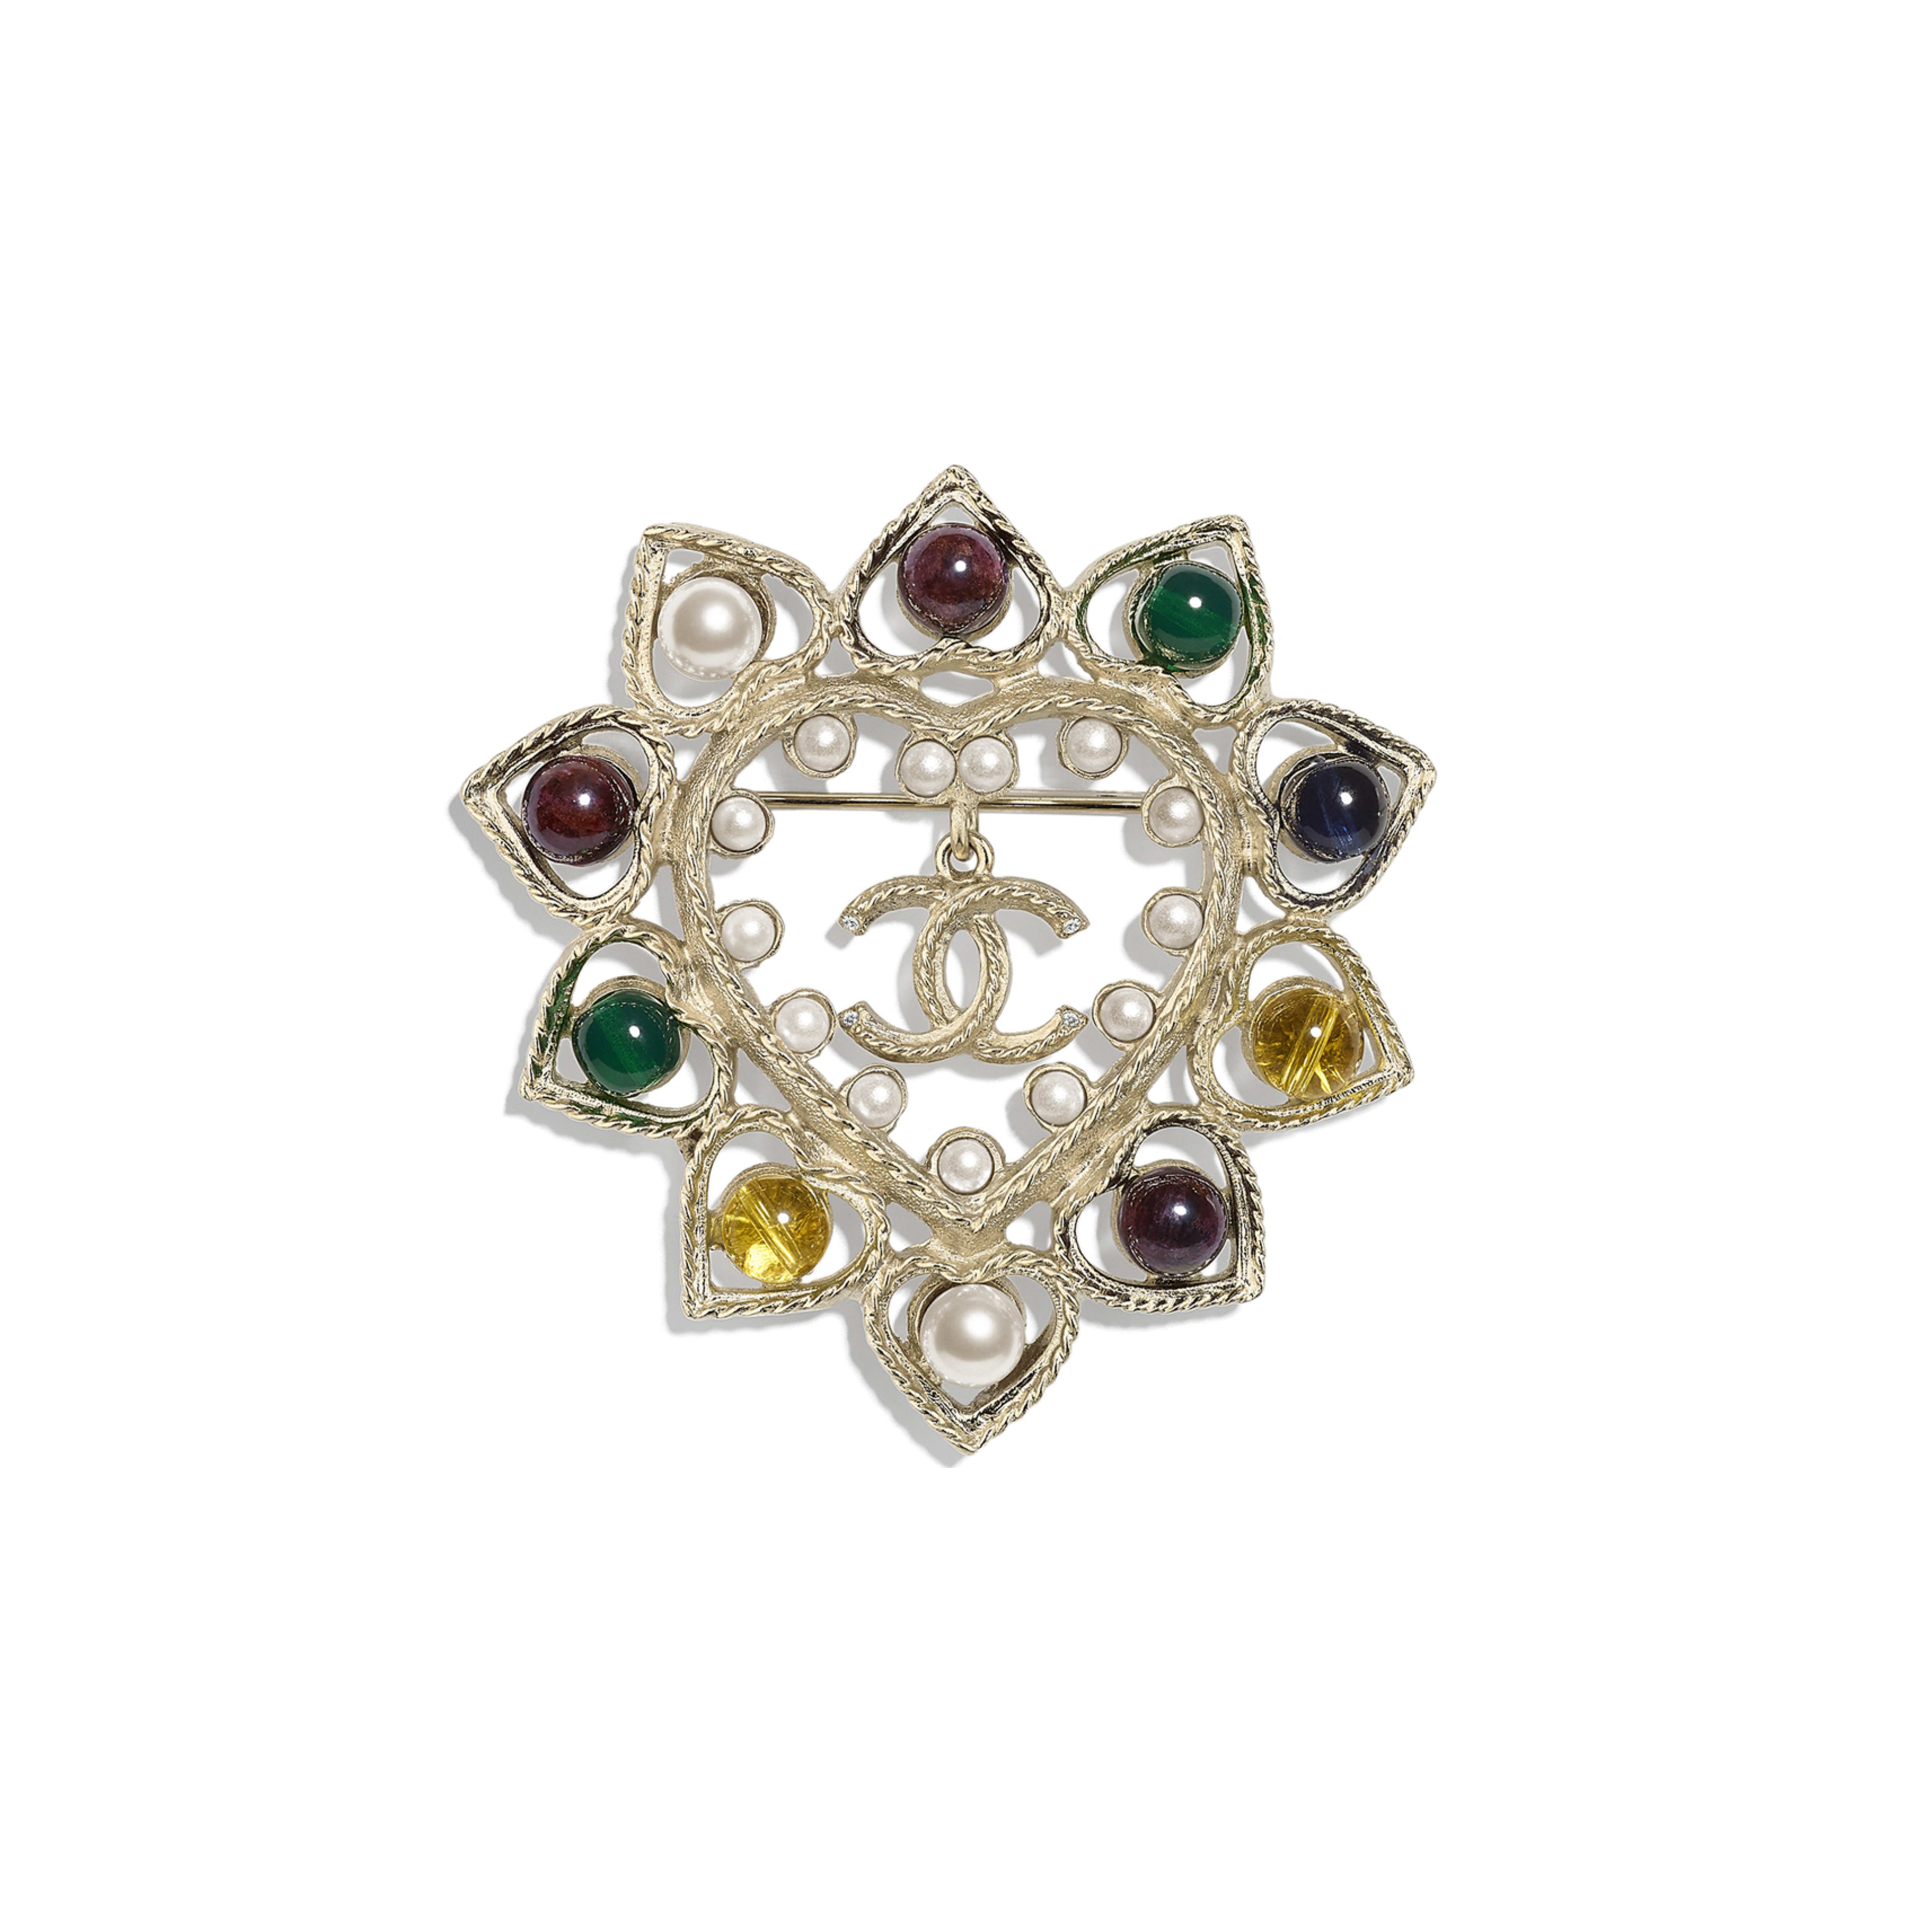 Brooch - Gold, Pearly White & Multicolor - Metal, Natural Stones, Glass Pearls & Strass - Default view - see full sized version